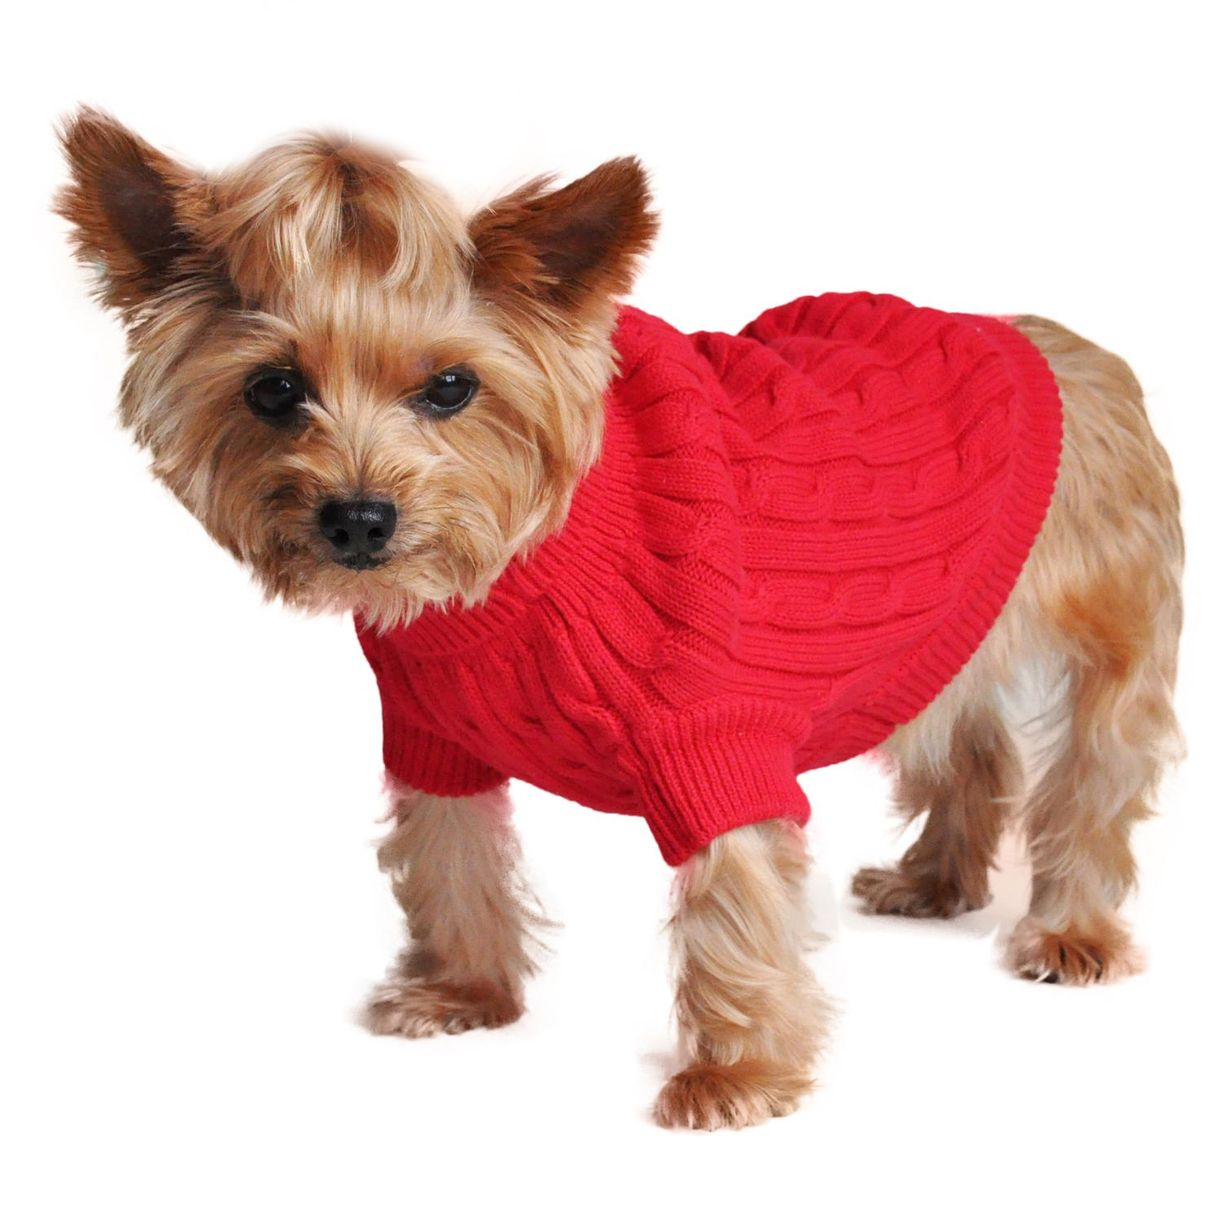 Cotton Cable Knit Dog Sweater Pattern Free Hypoallergenic ...